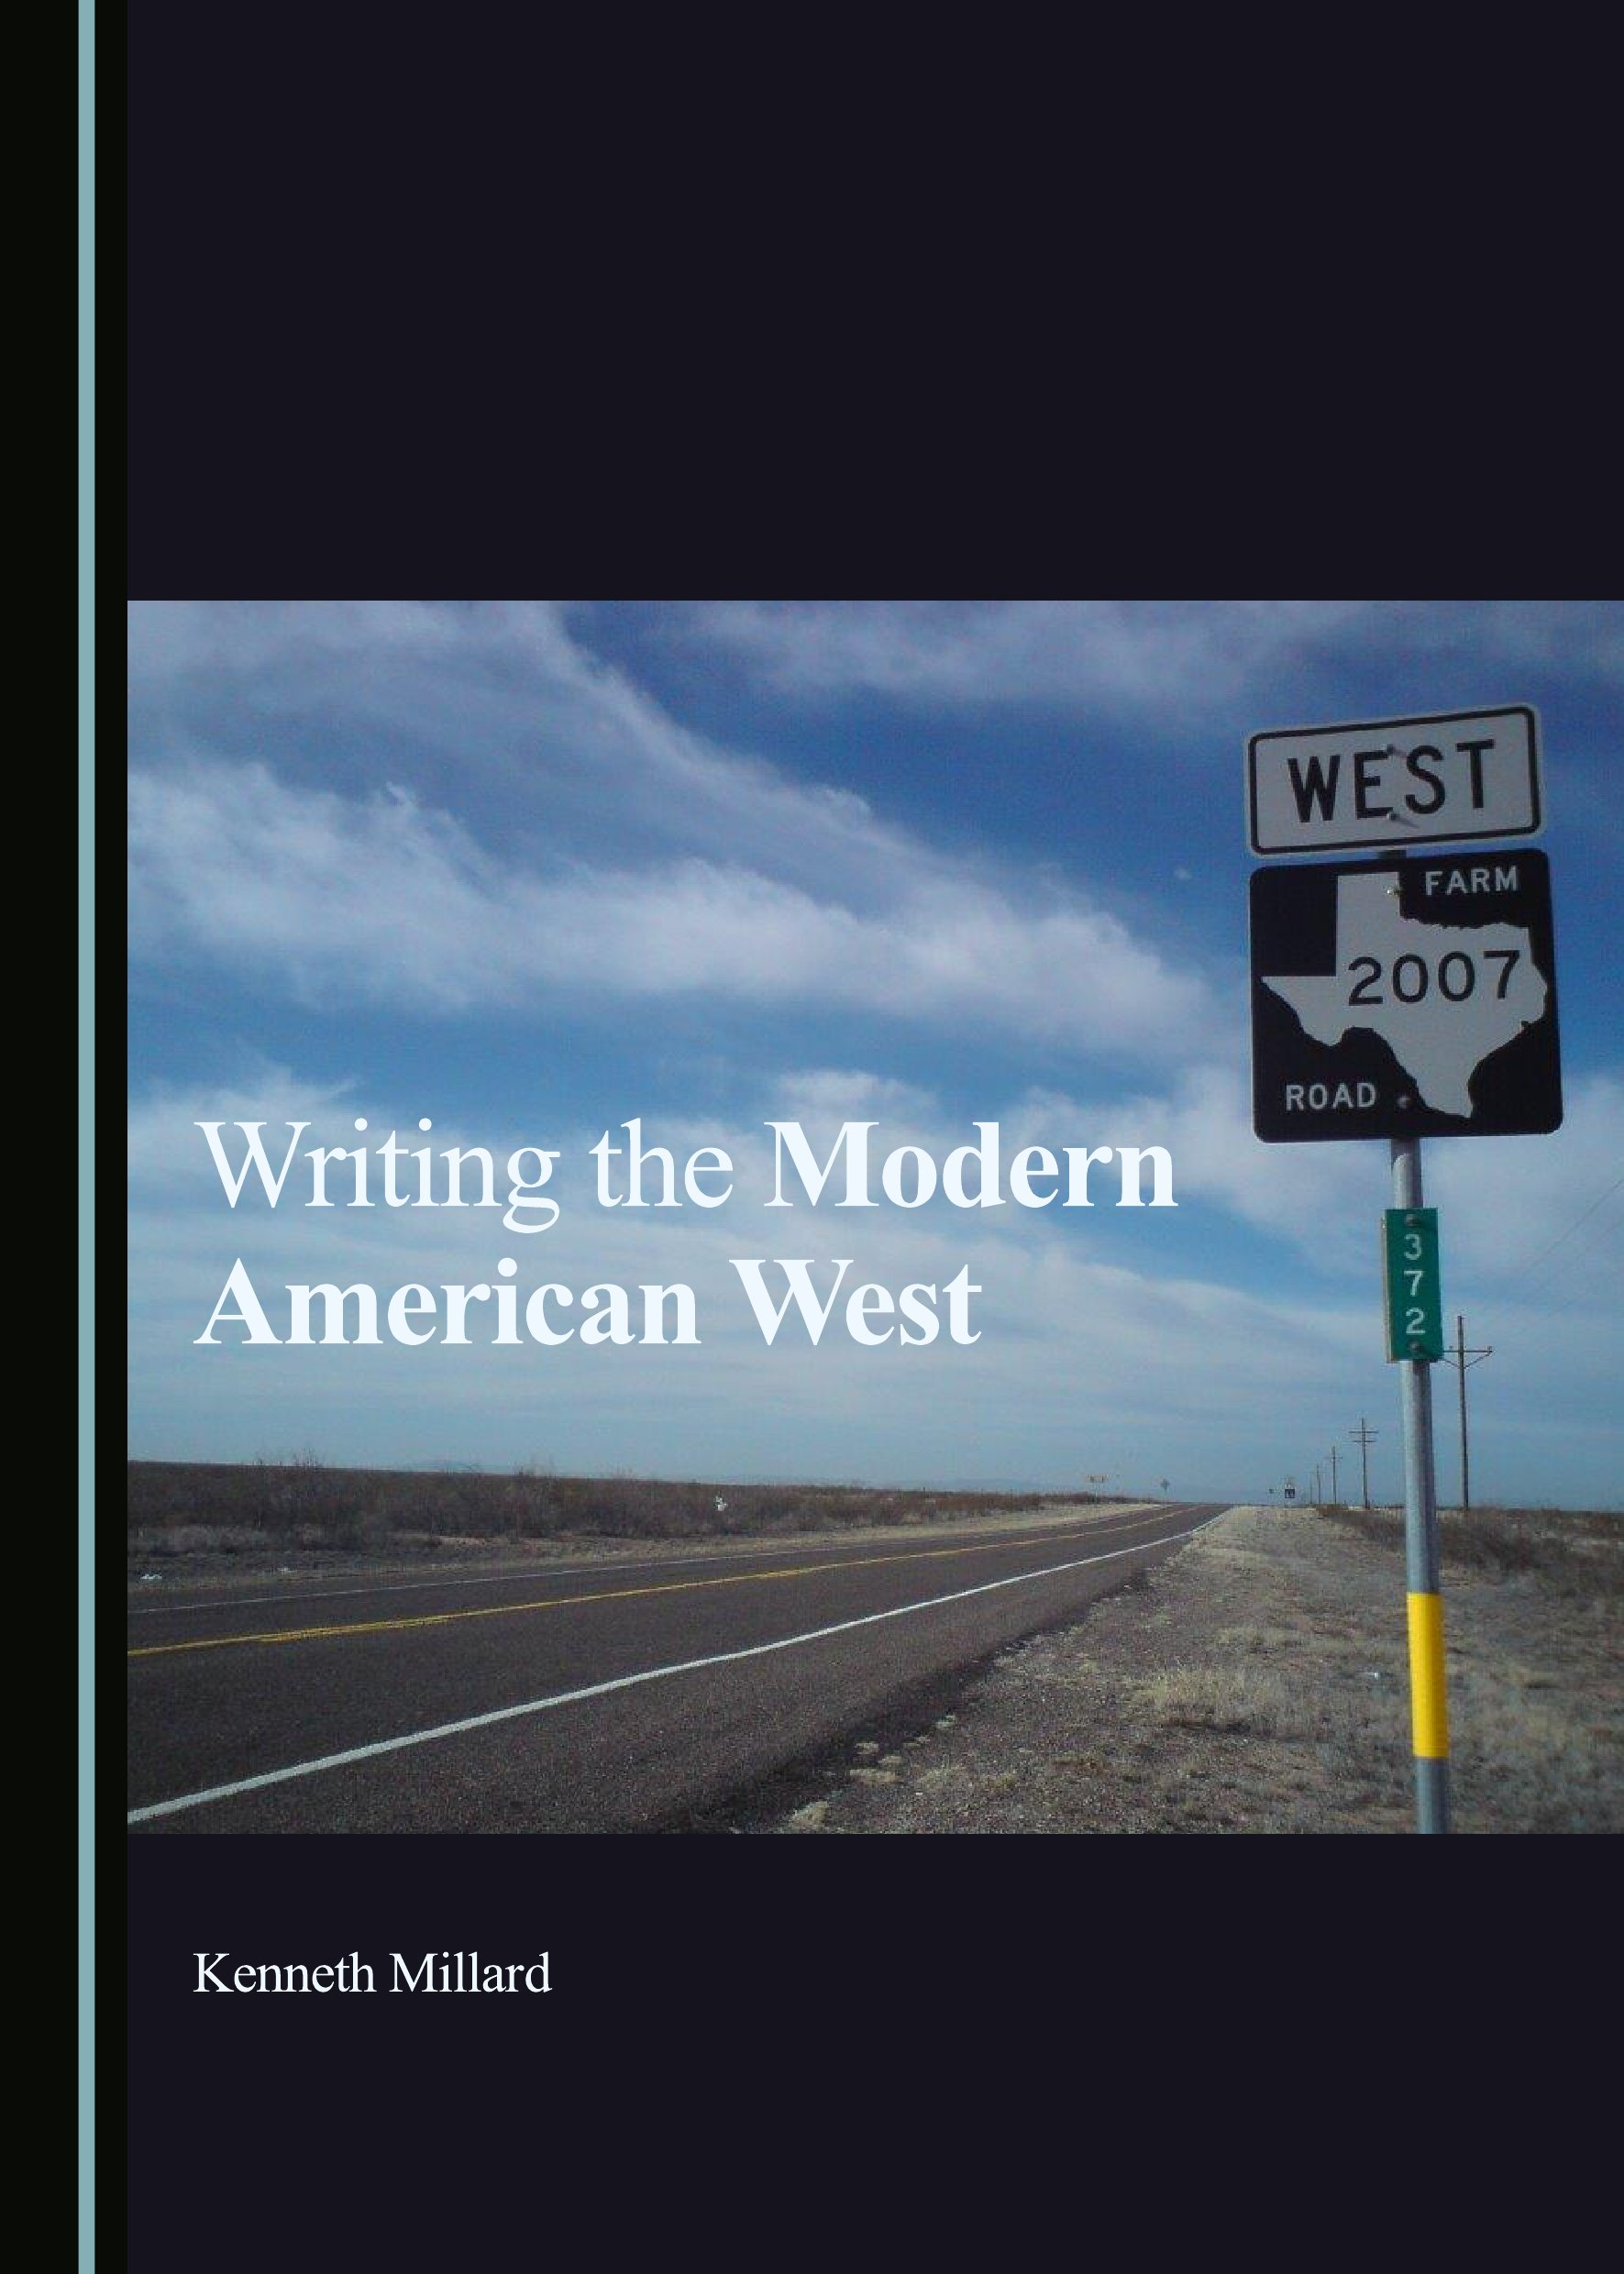 Writing the Modern American West